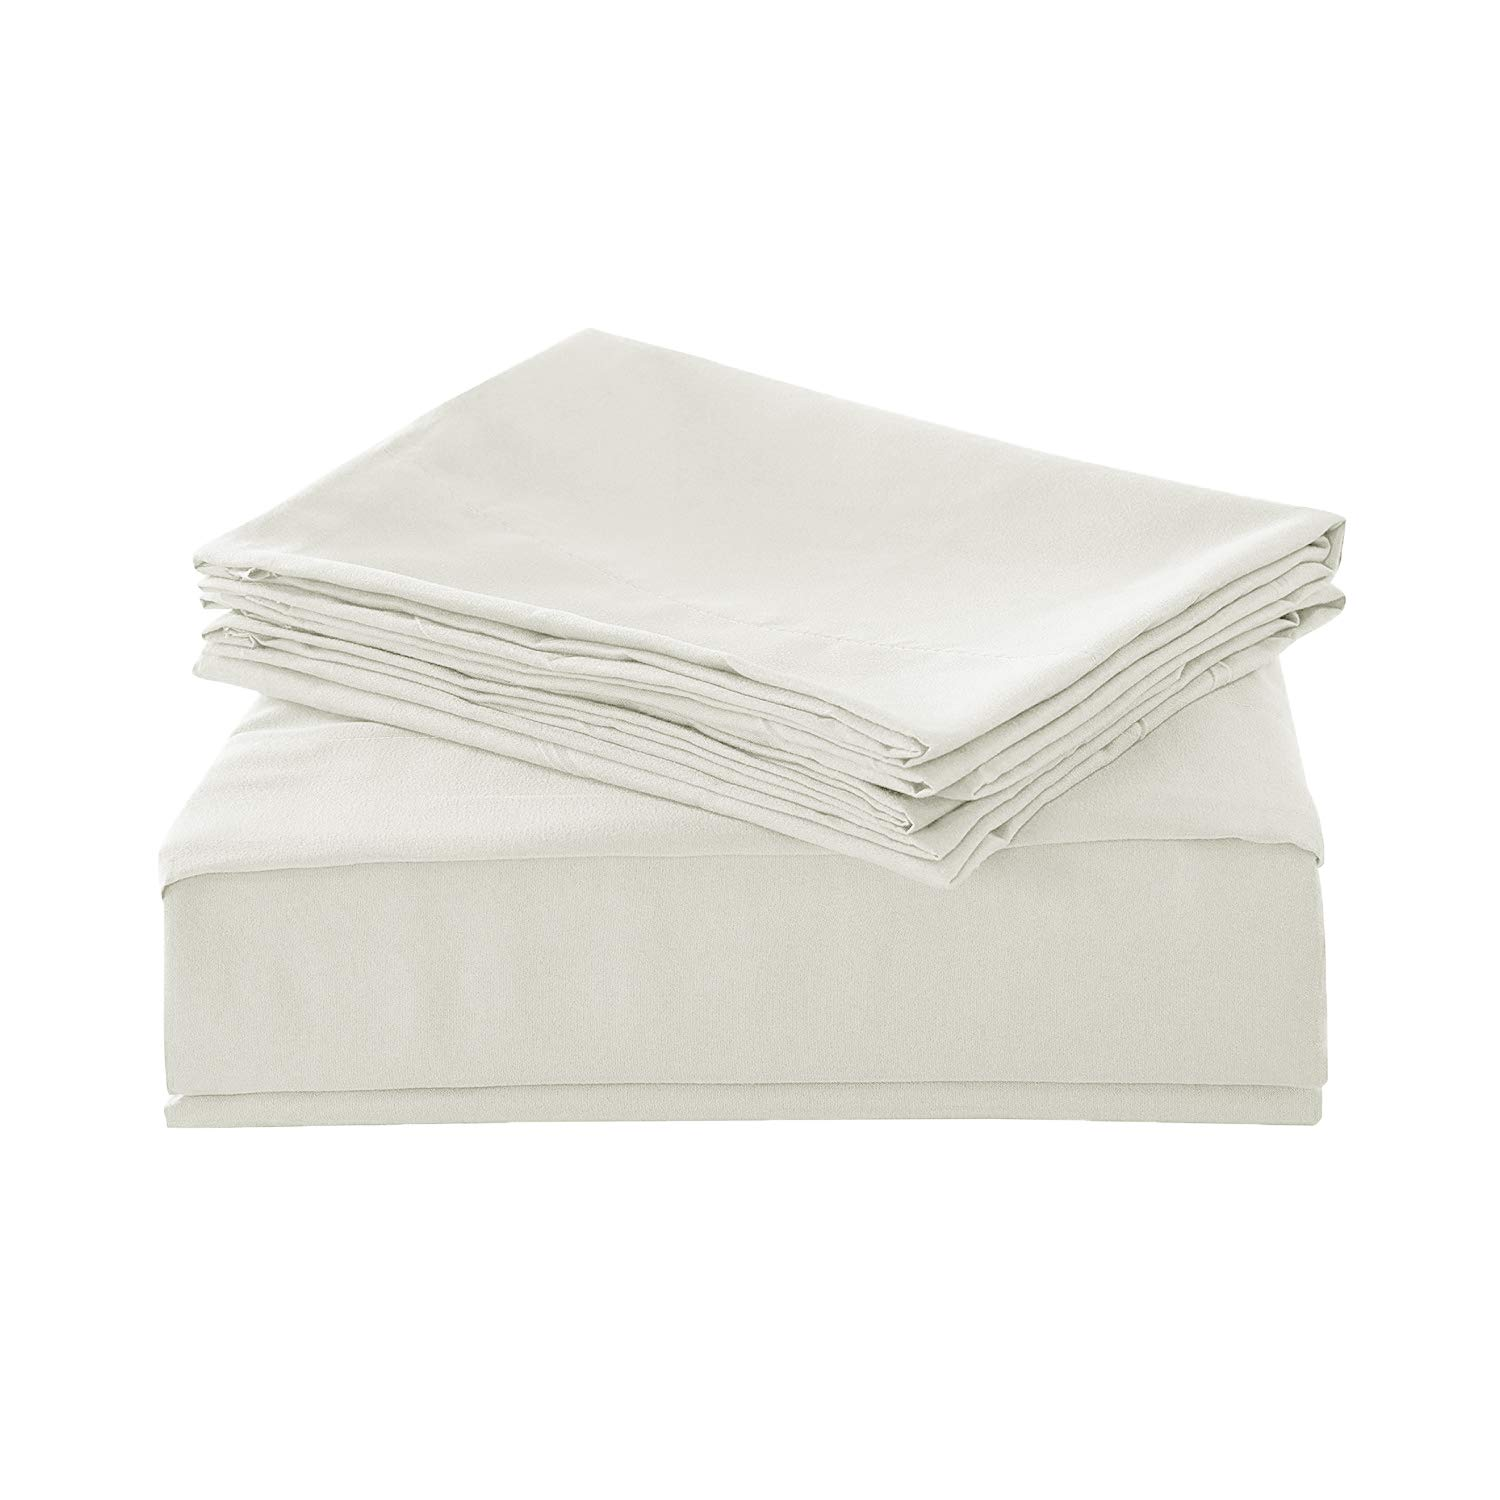 HollyHOME 1500 Soft Hypoallergenic Brushed Microfiber Bed Sheet Set, 4 Pieces Full Size Sheets, Ivory